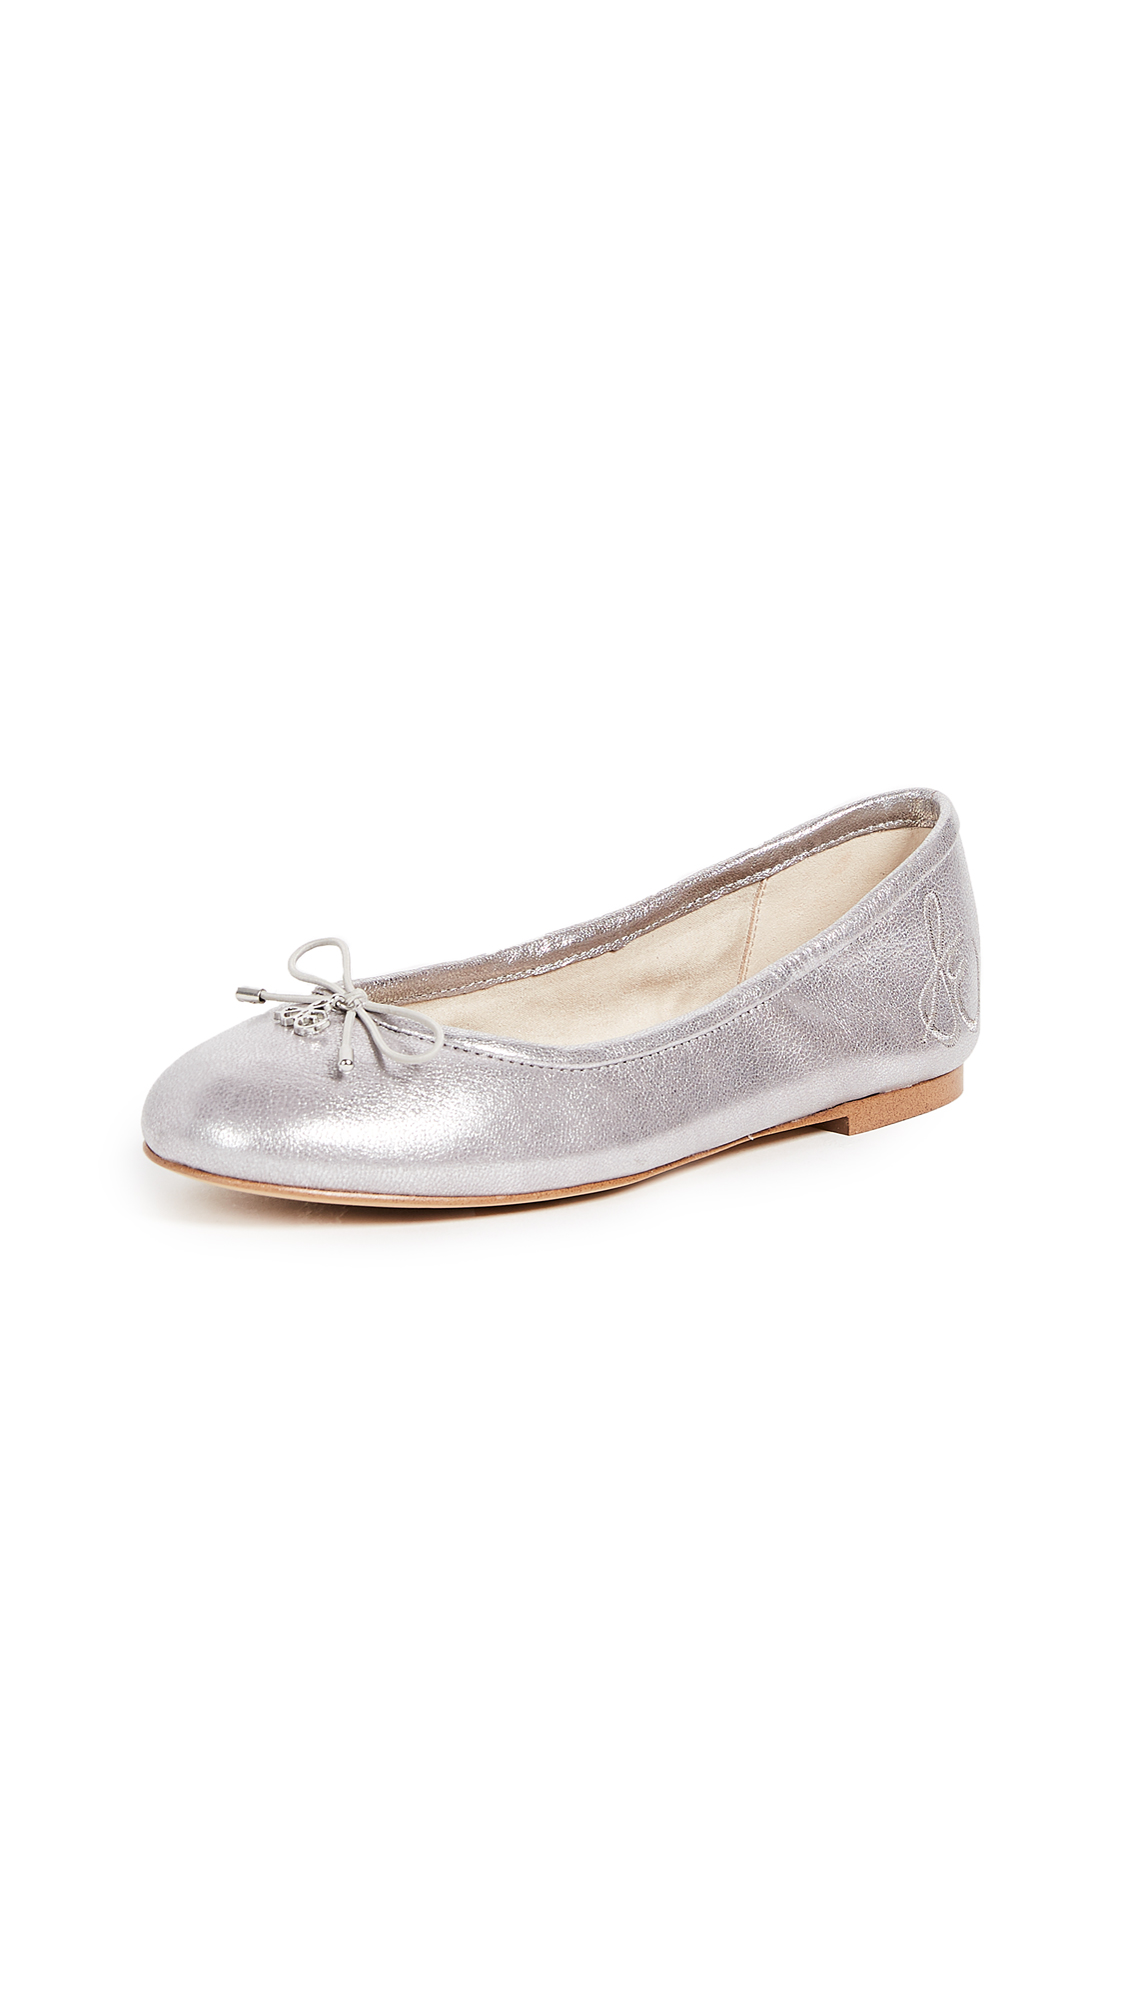 Sam Edelman Felicia Ballet Flats - Light Pewter